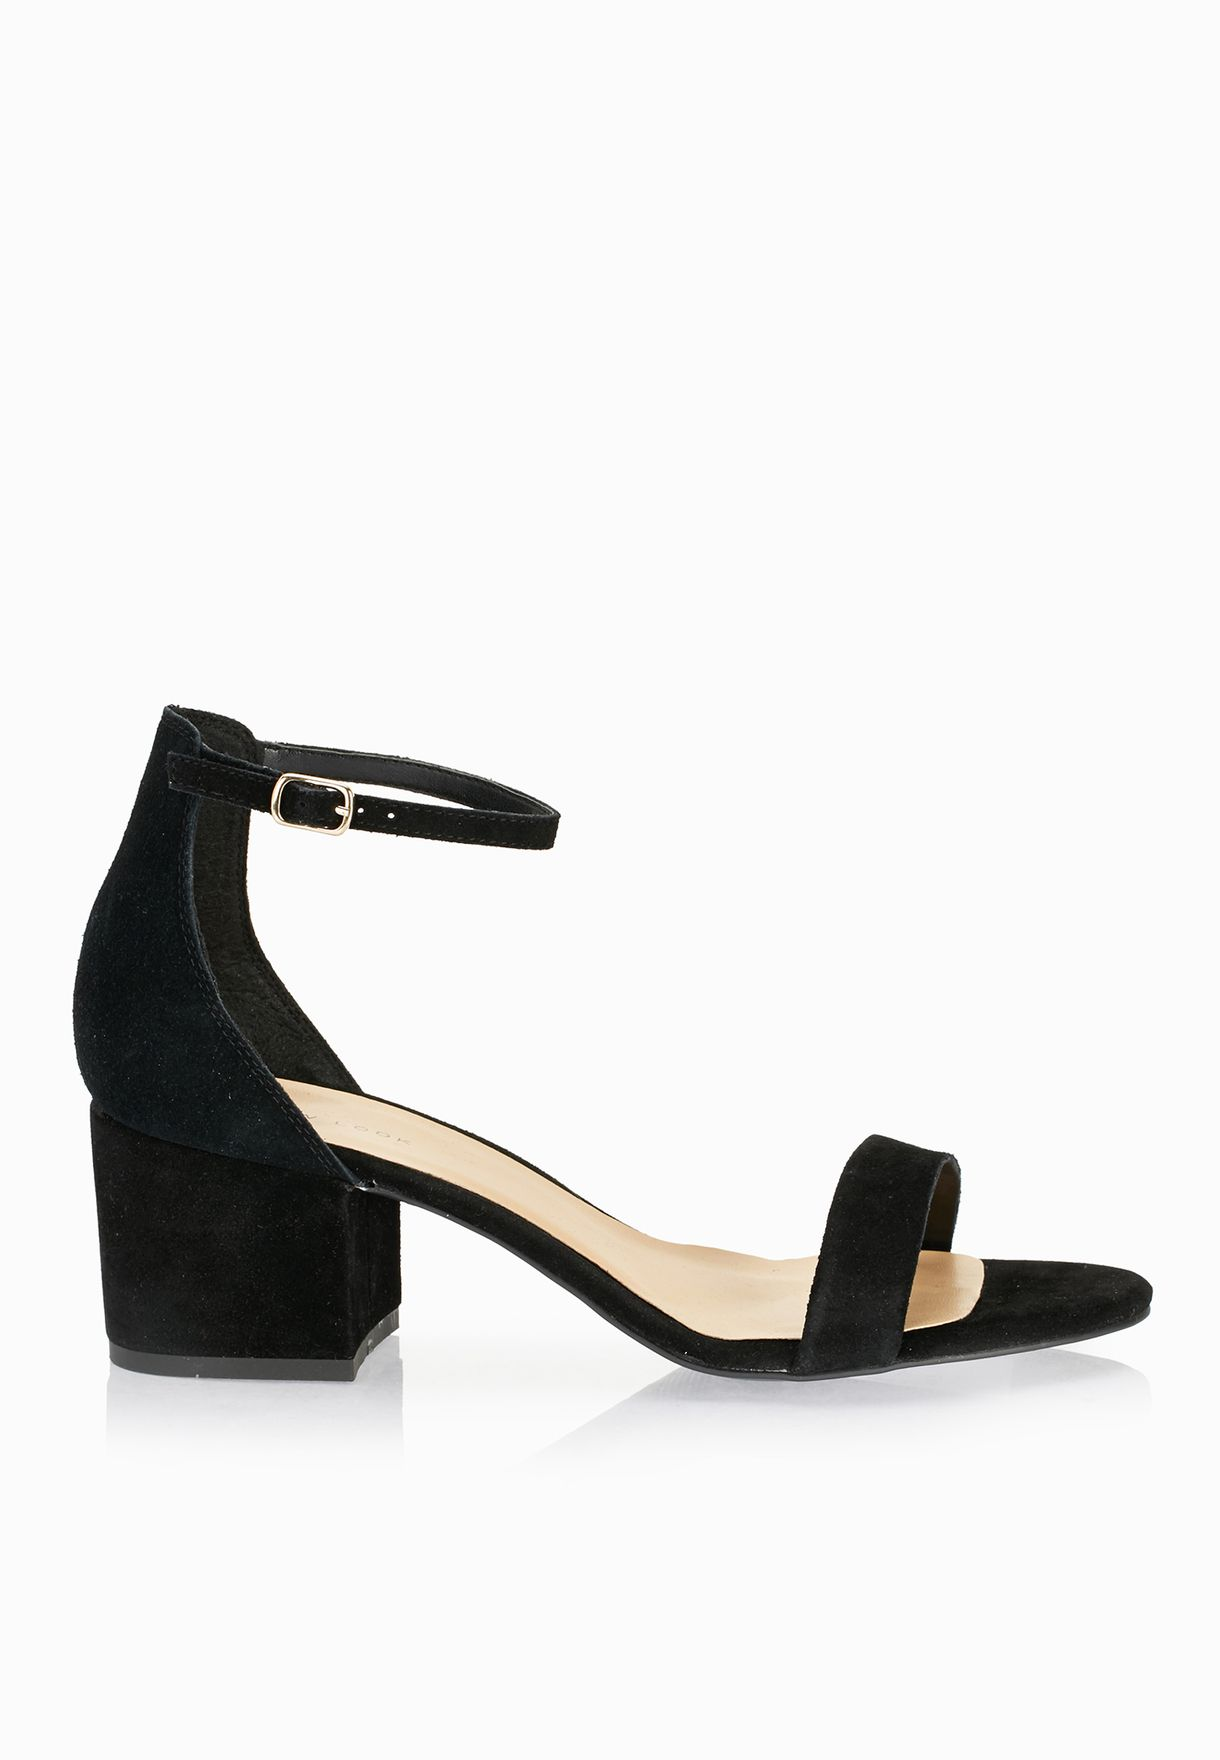 5cf5f097cda Shop New Look black Ticket Ankle Strap Block Heel Sandals 381508101 ...